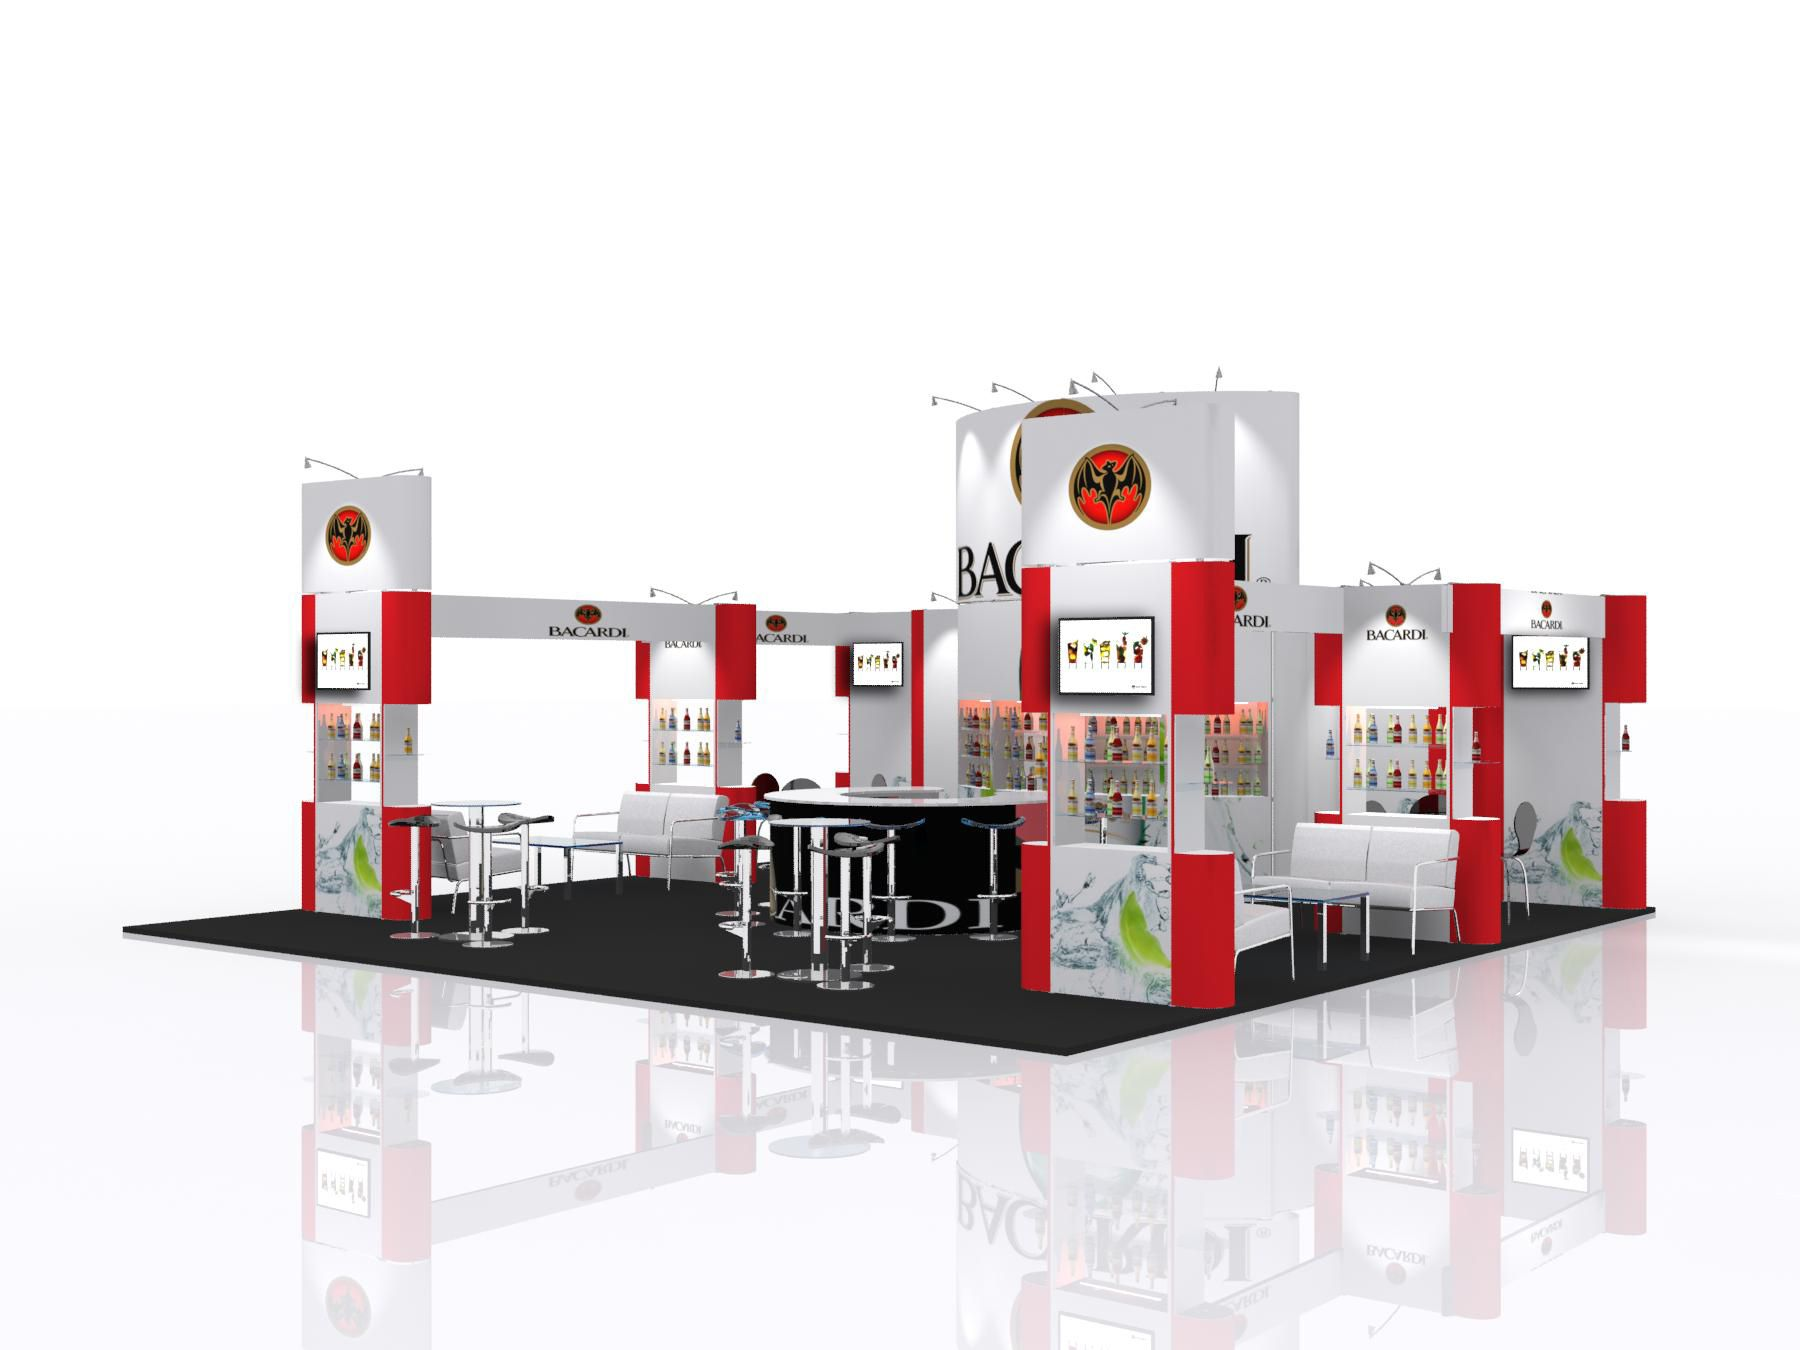 Exhibition Stand Information : Modular exhibition stand design for bacardi. for more information on